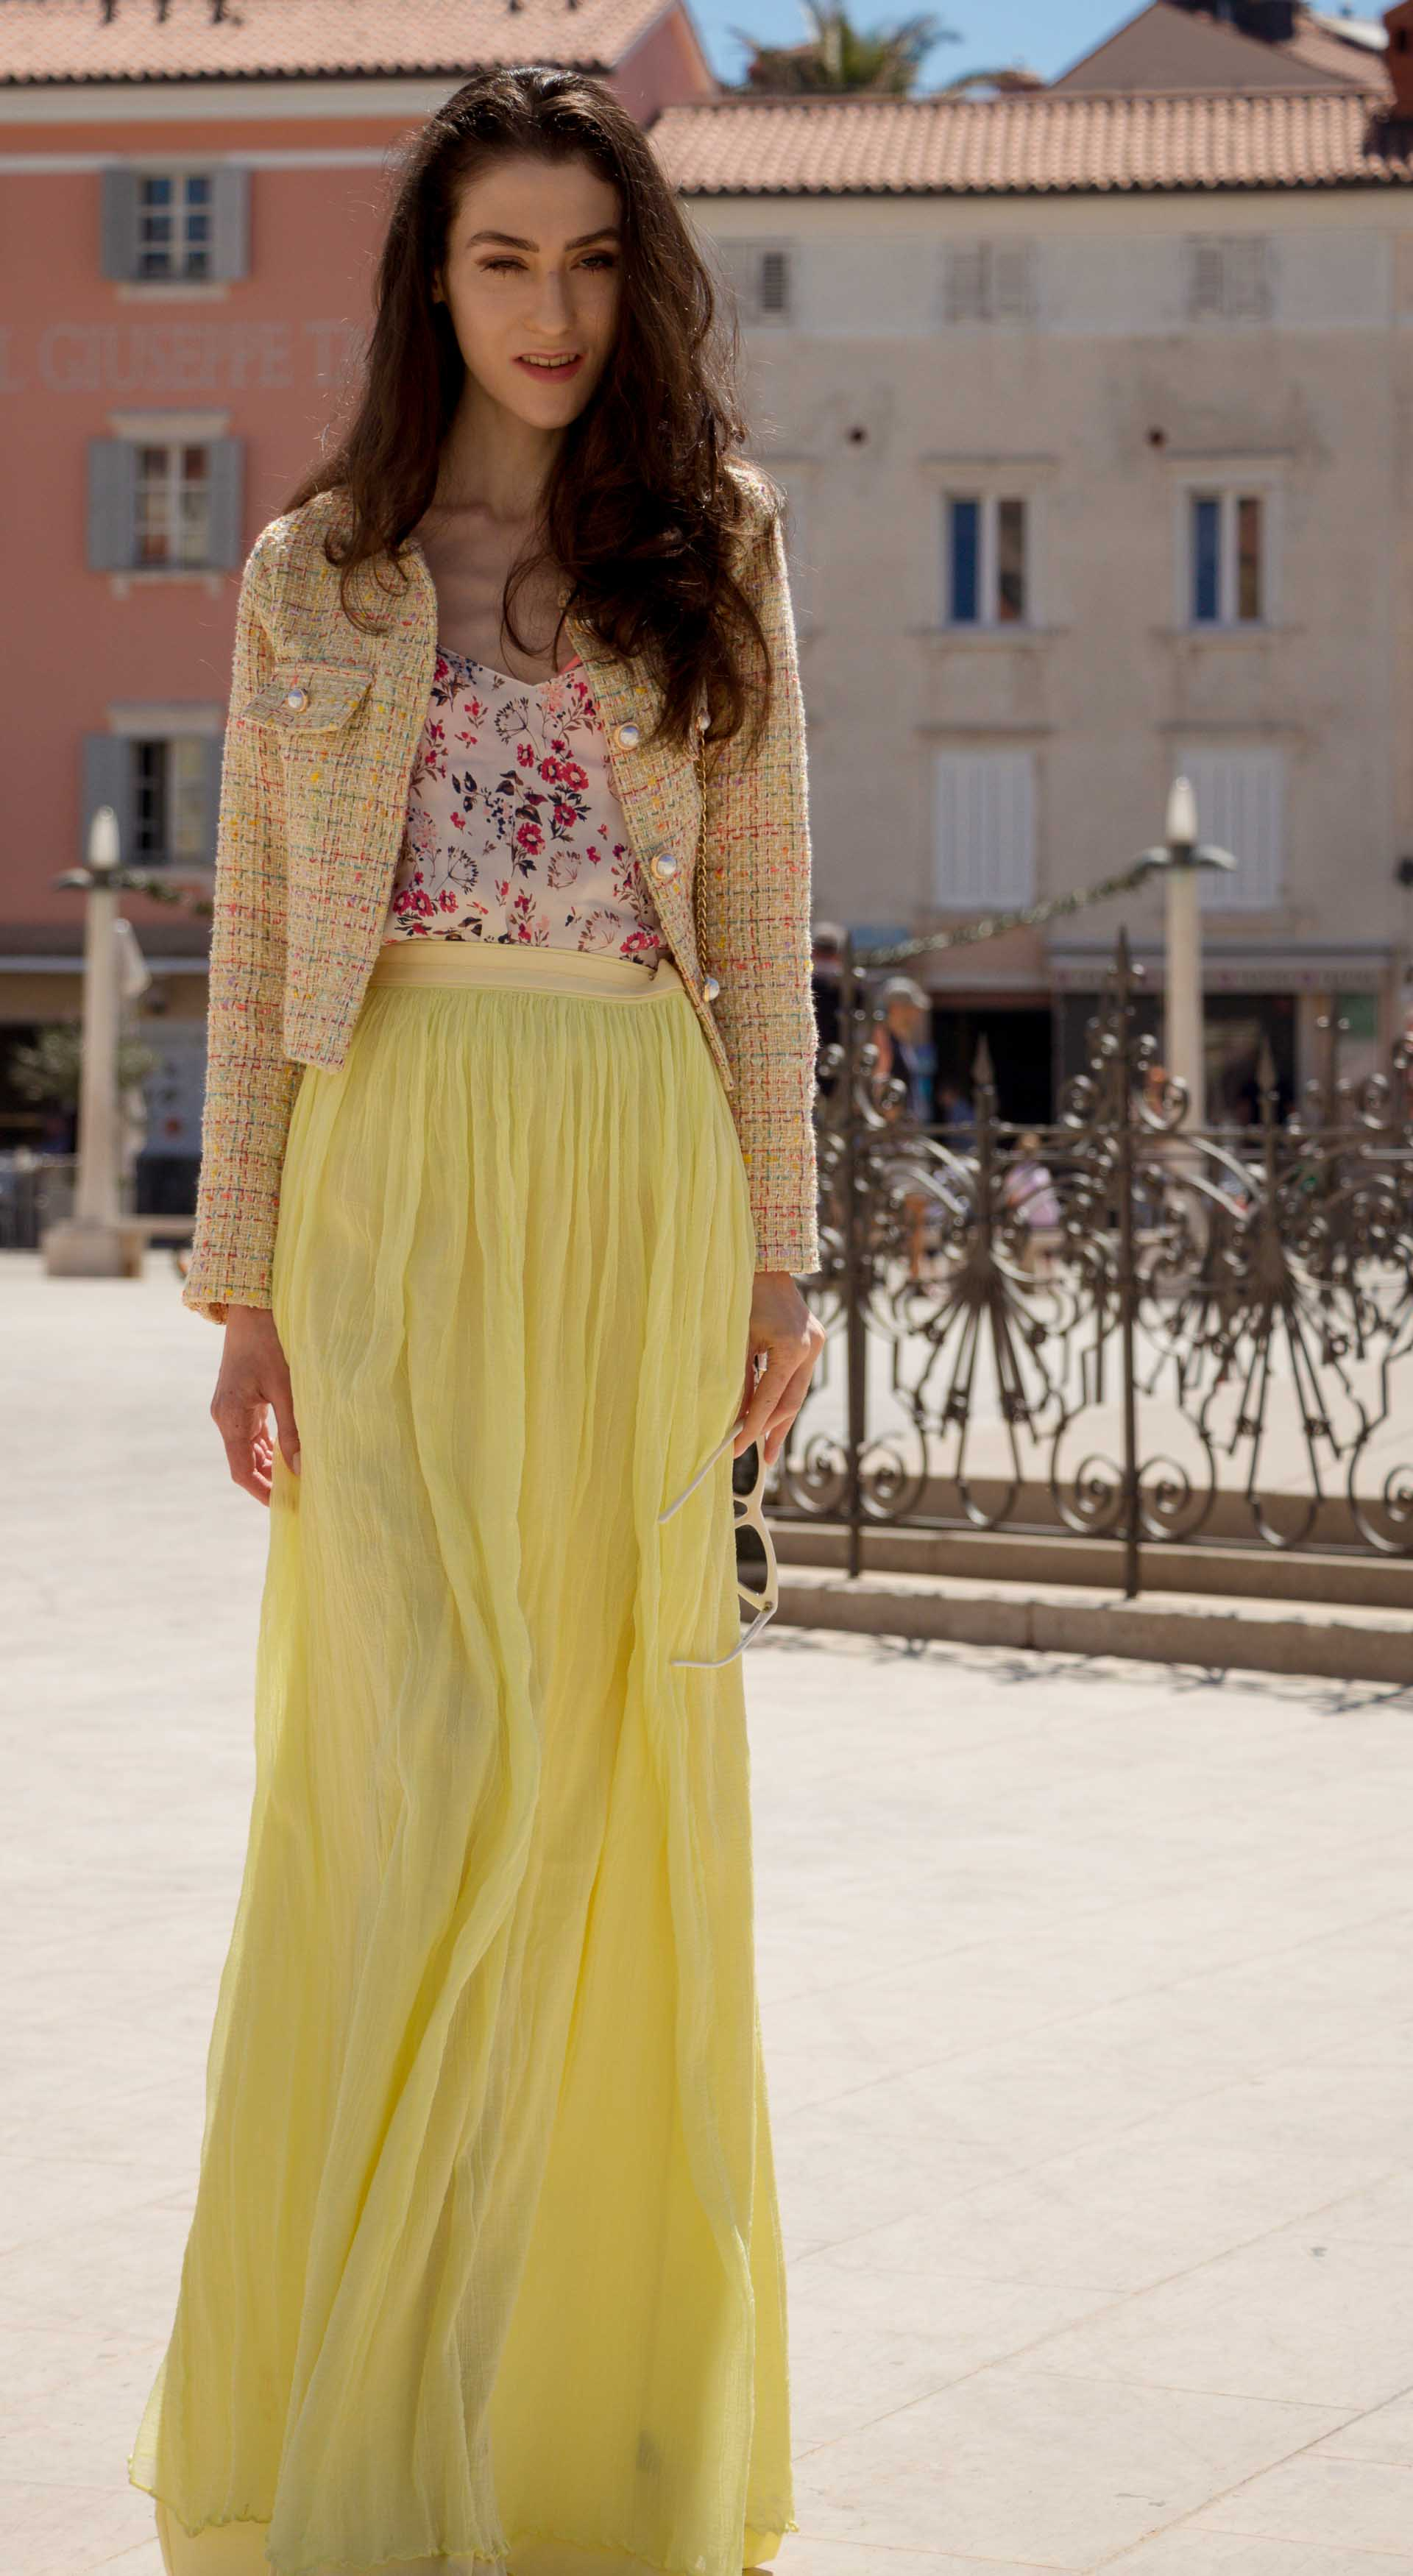 Veronika Lipar Fashion Blogger of Brunette from Wall Street wearing maxi yellow tulle skirt from Needle & Thread, short yellow tweed jacket from Storets, floral sik top, blush Gianvito Rossi plexi pumps, white shoulder bag, Lespecs white cat eye sunglasses